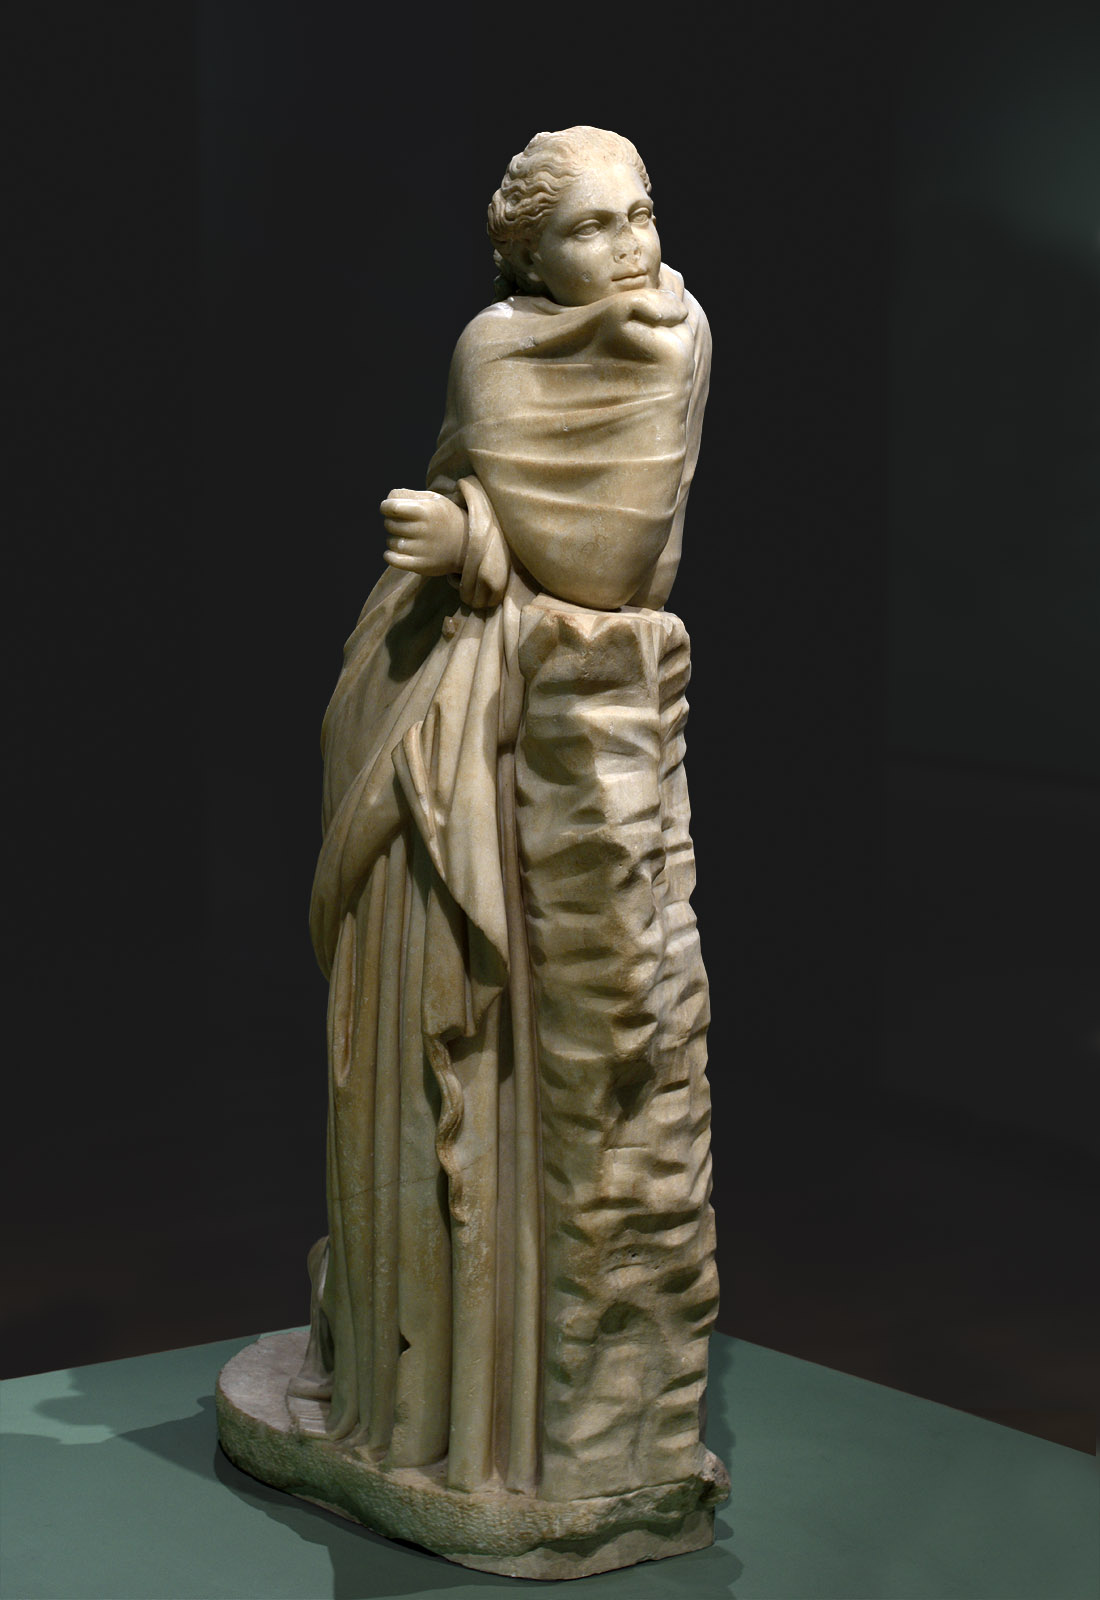 Statue of a Muse (Polyhymnia?). Parian marble. 2nd cent. BCE. Inv. No. 2135. Rome, Capitoline Museums, Museum Montemartini (Centrale Montemartini), III. 17